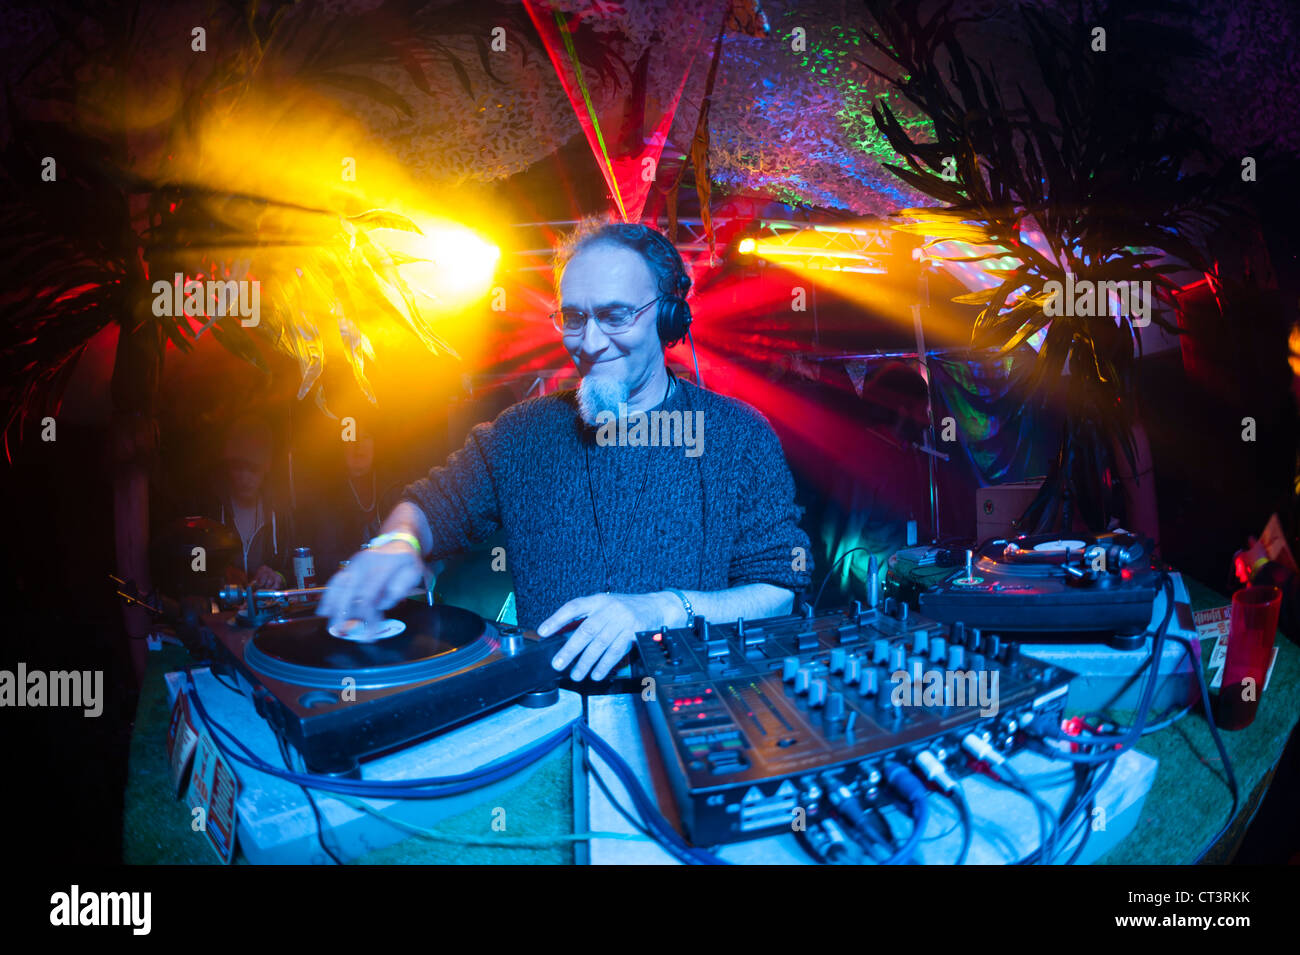 A middle aged older person man DJ'ing at The Rare One music dance party event festival, Wales UK - Stock Image